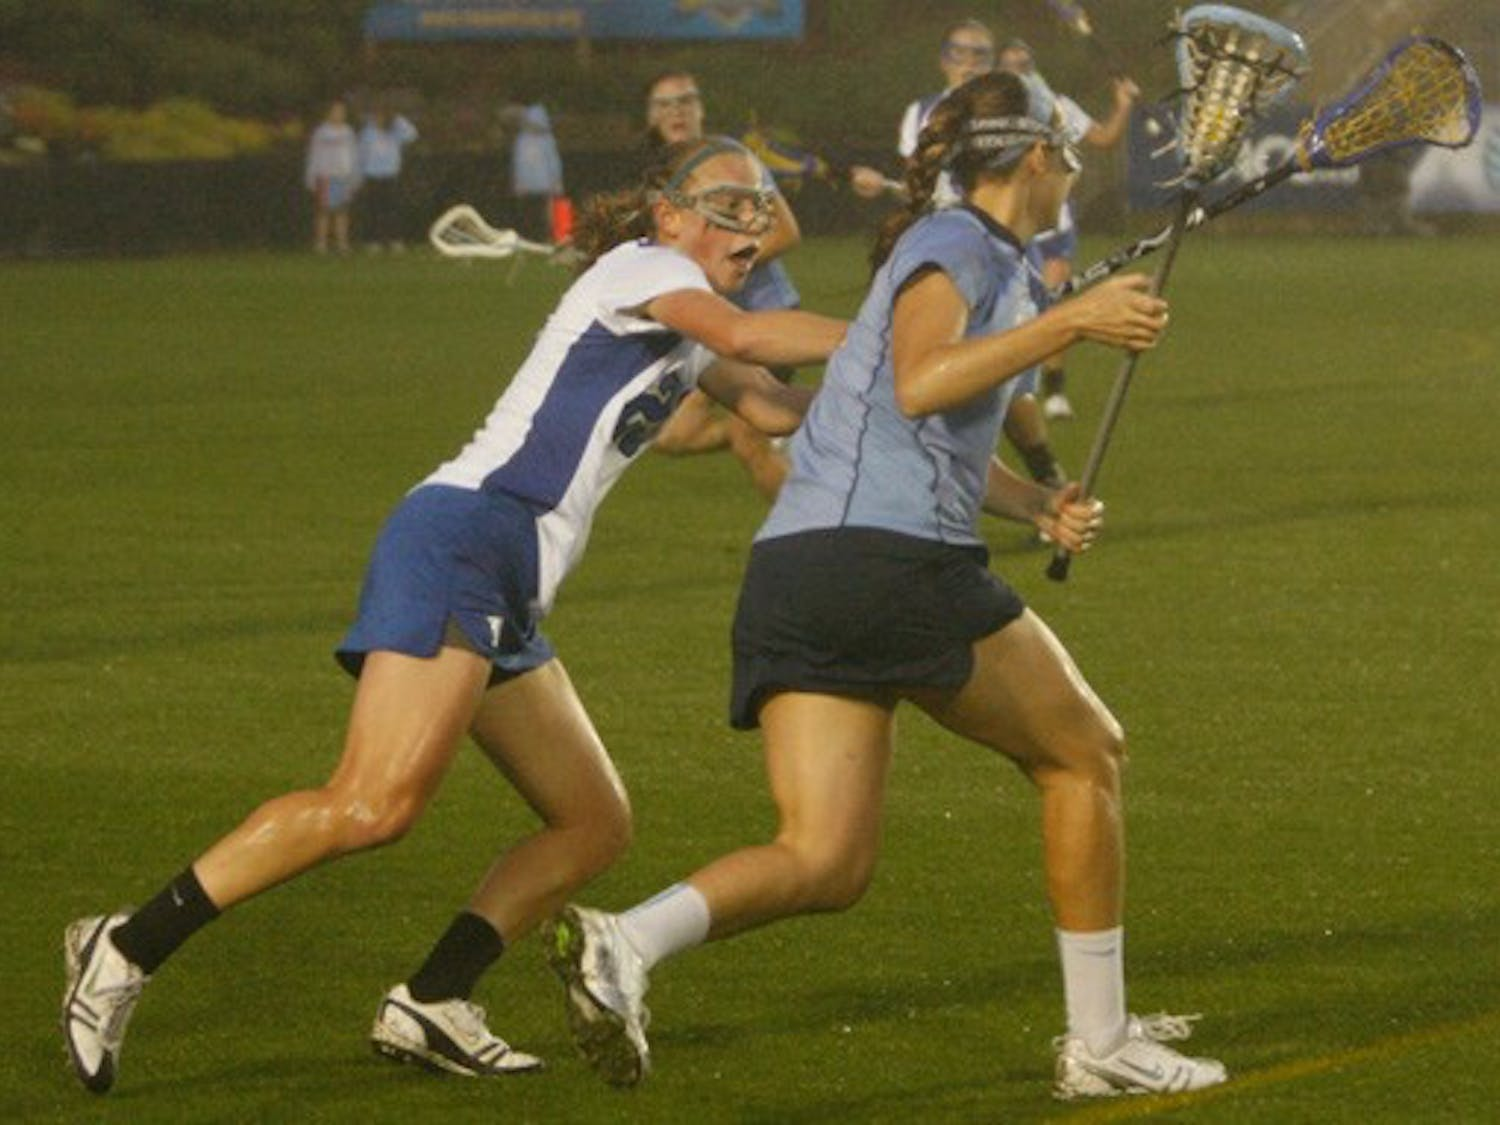 Amid a downpour, North Carolina went on an 8-1 run in a 17-minute span to take an insurmountable lead.